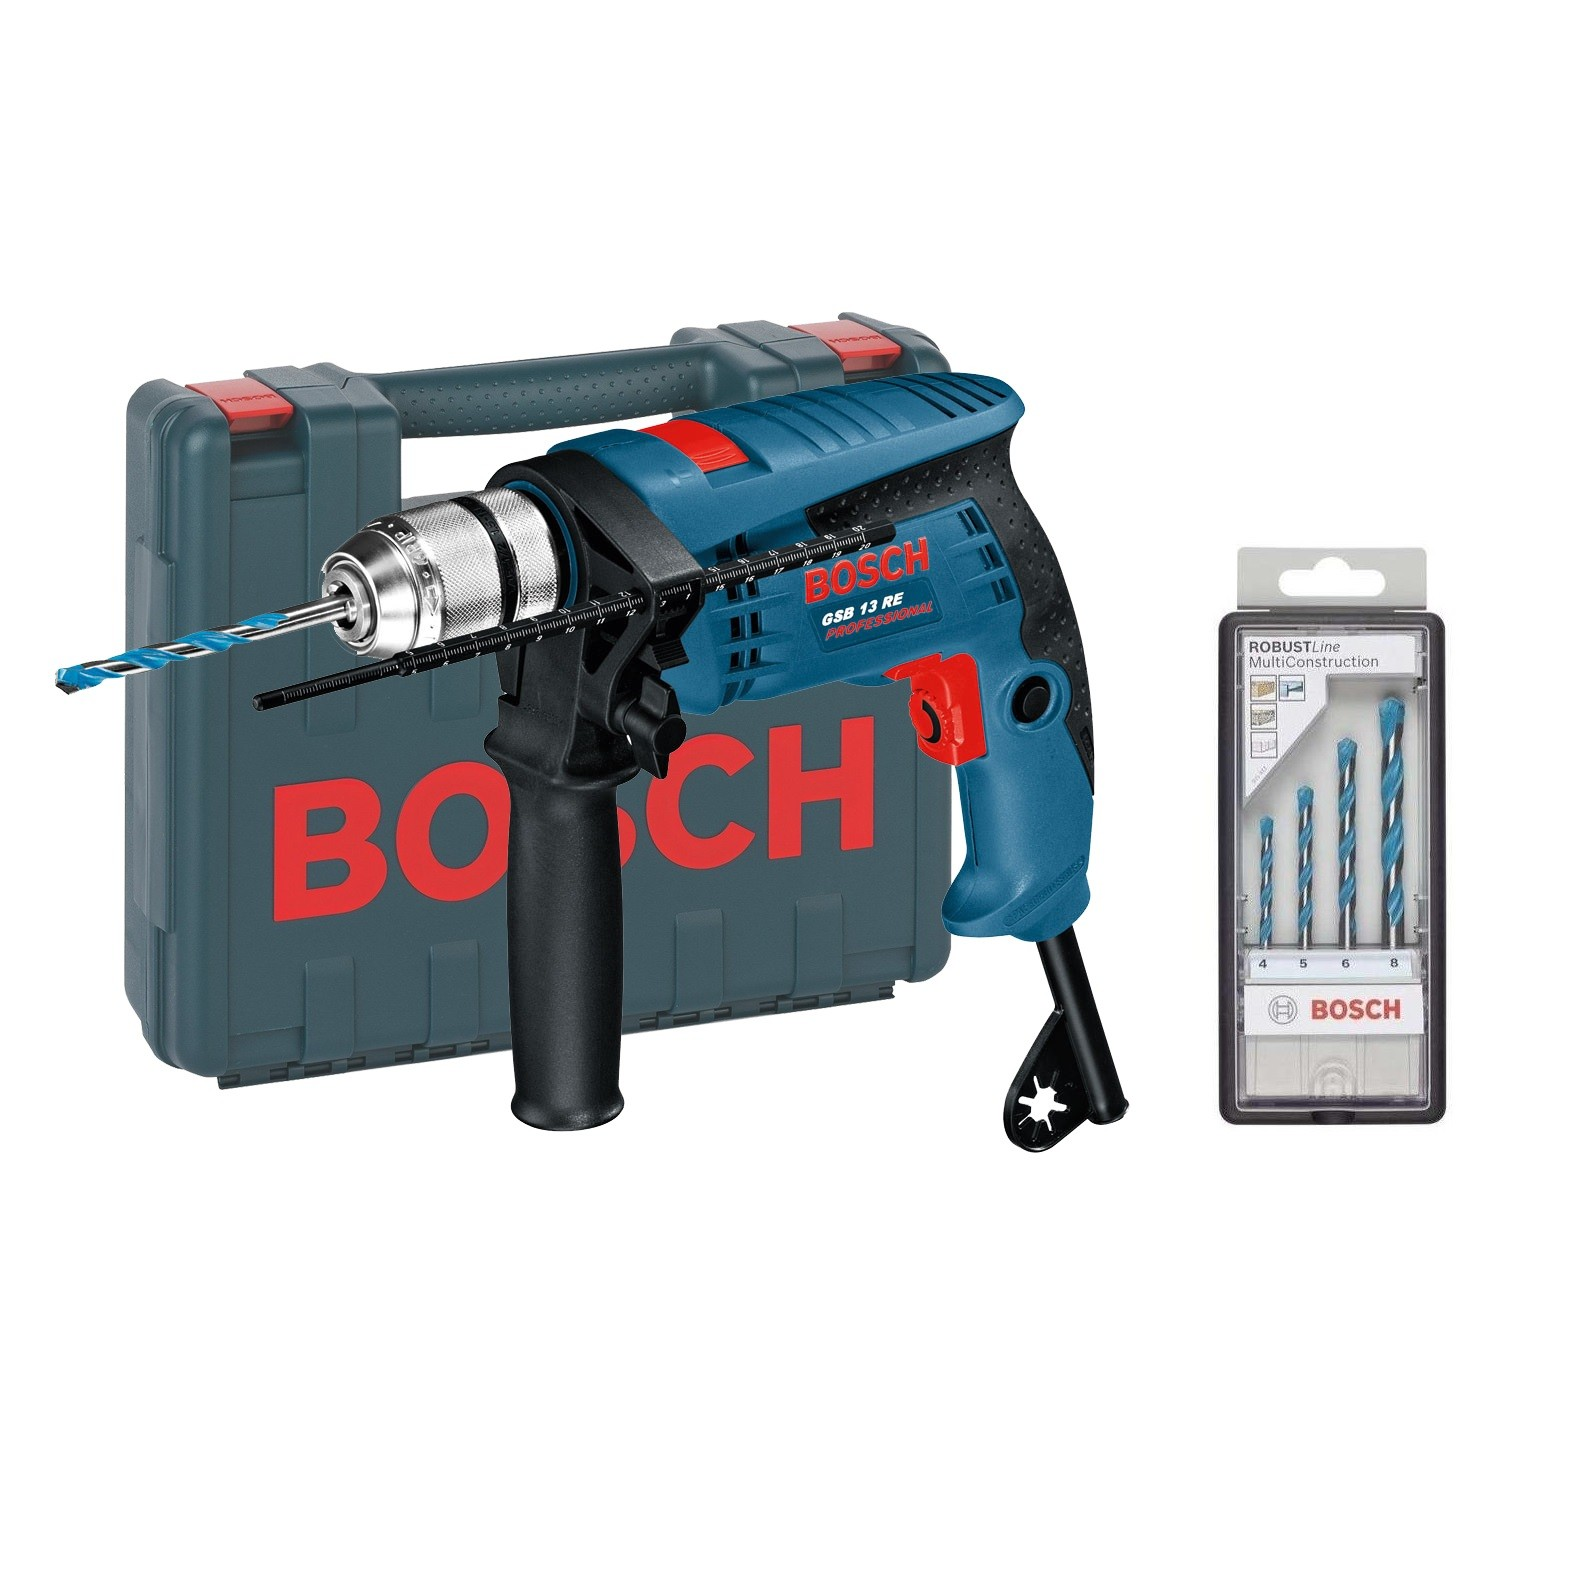 Bosch GSB 13 RE 600W Impact Drill in Carry Case with Drill Bits